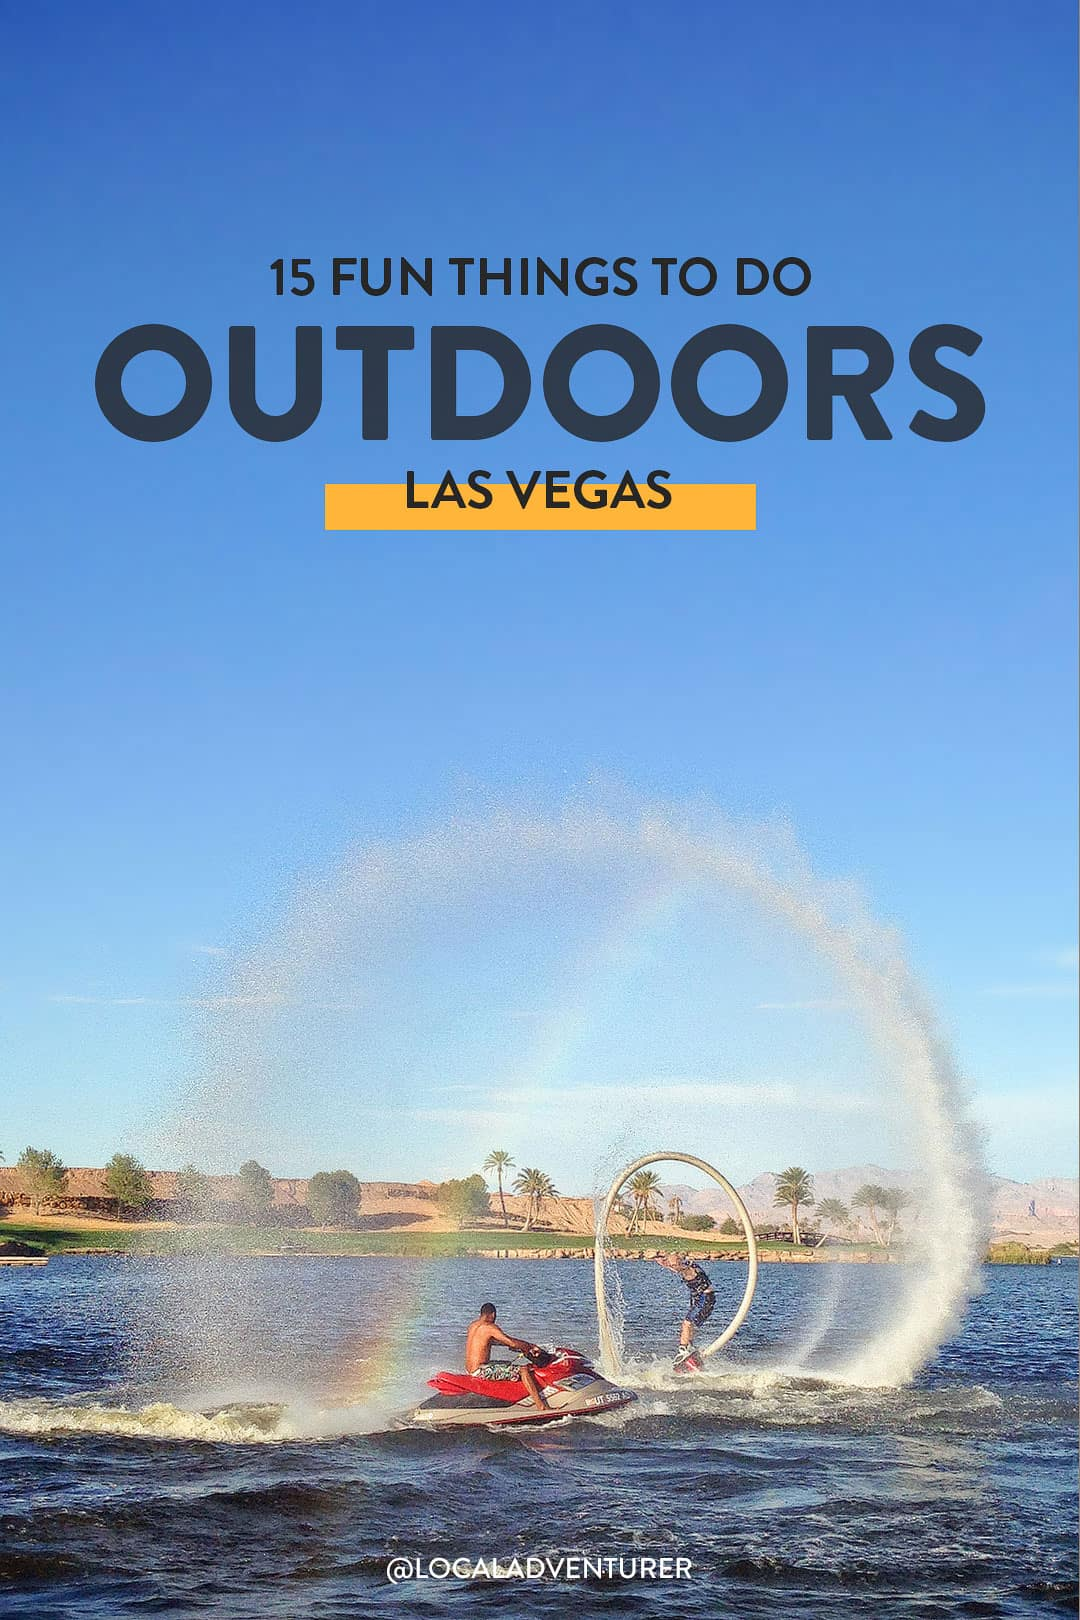 15 Fun Outdoor Activities in Las Vegas to Help You Get Outside